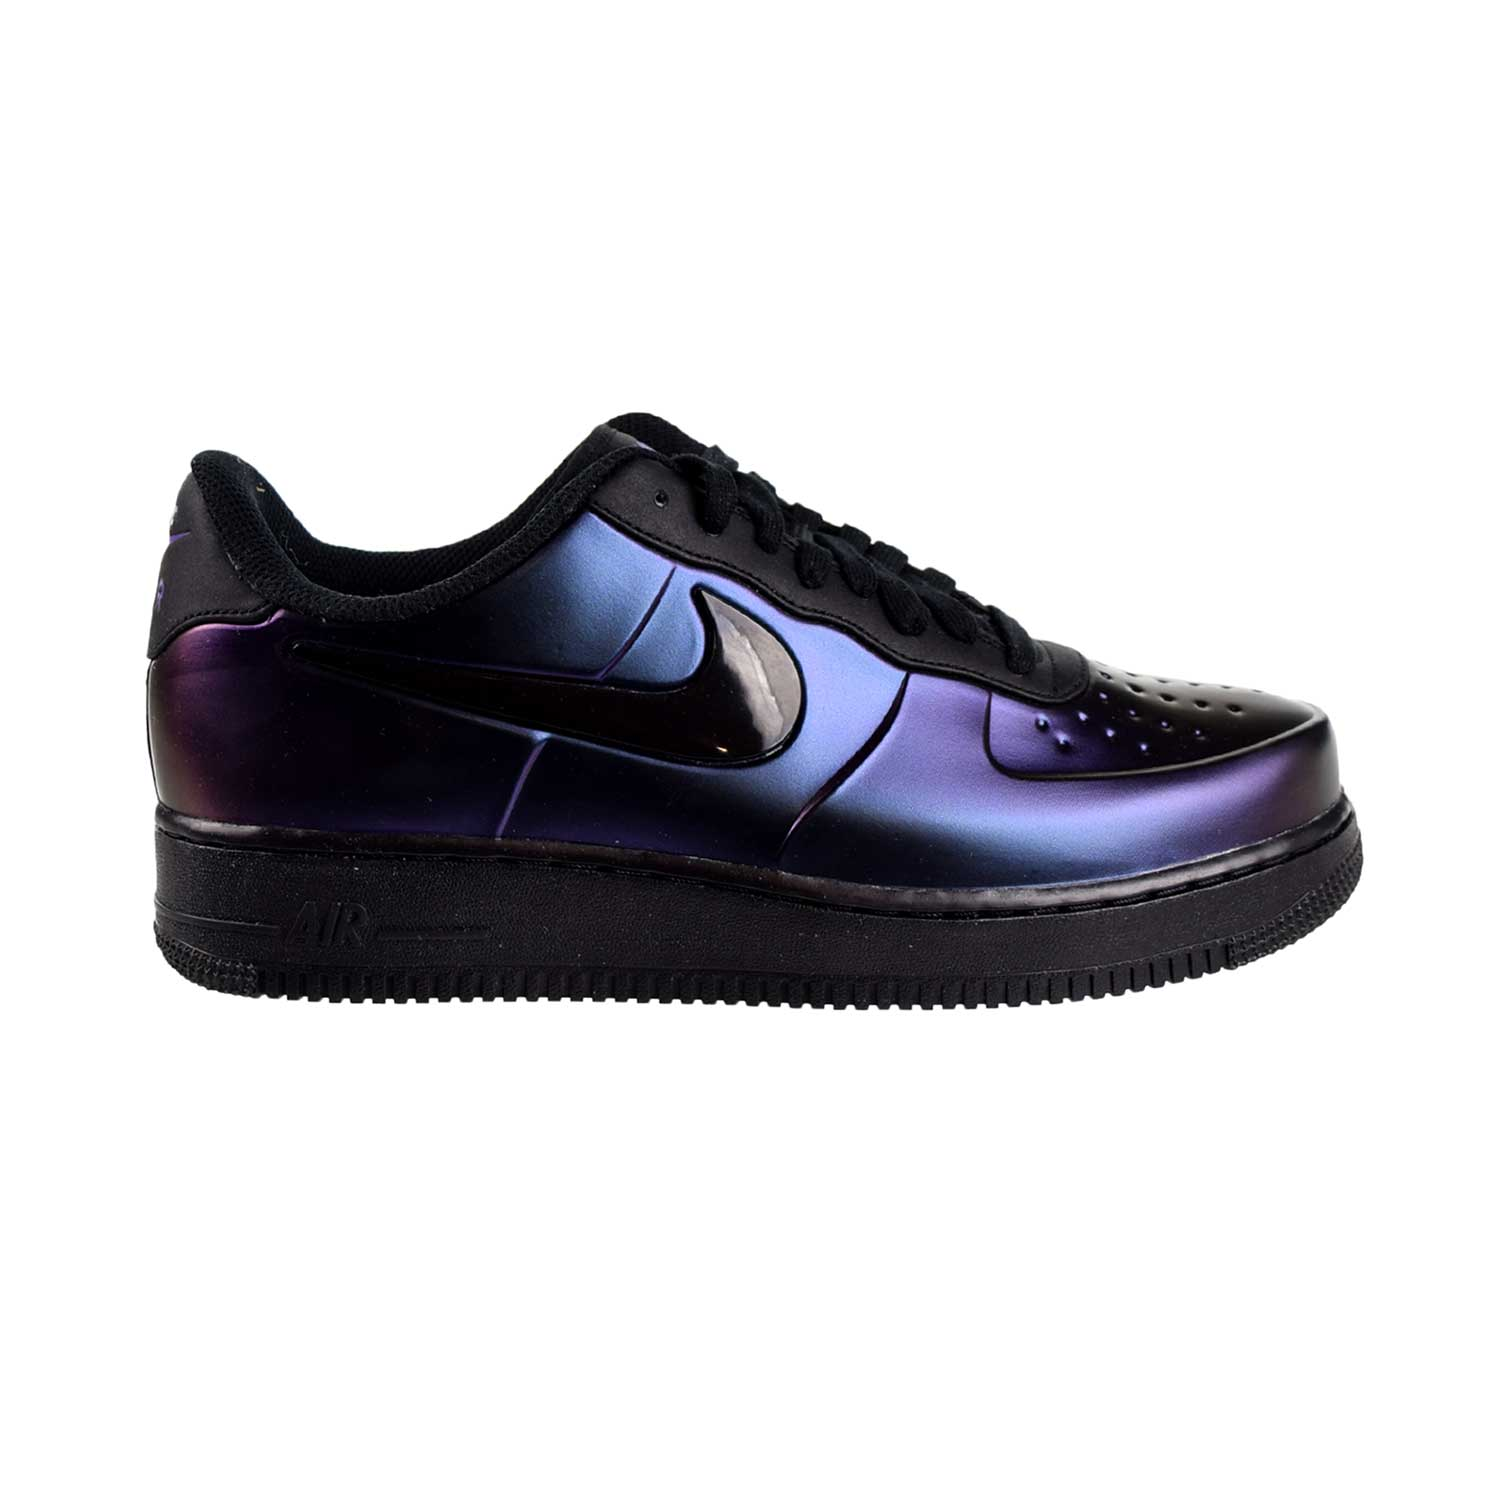 best sneakers a50c2 07ff6 Details about Nike Air Force 1 Foamposite Pro Cup Mens Shoes Court  Purple/Black AJ3664-500